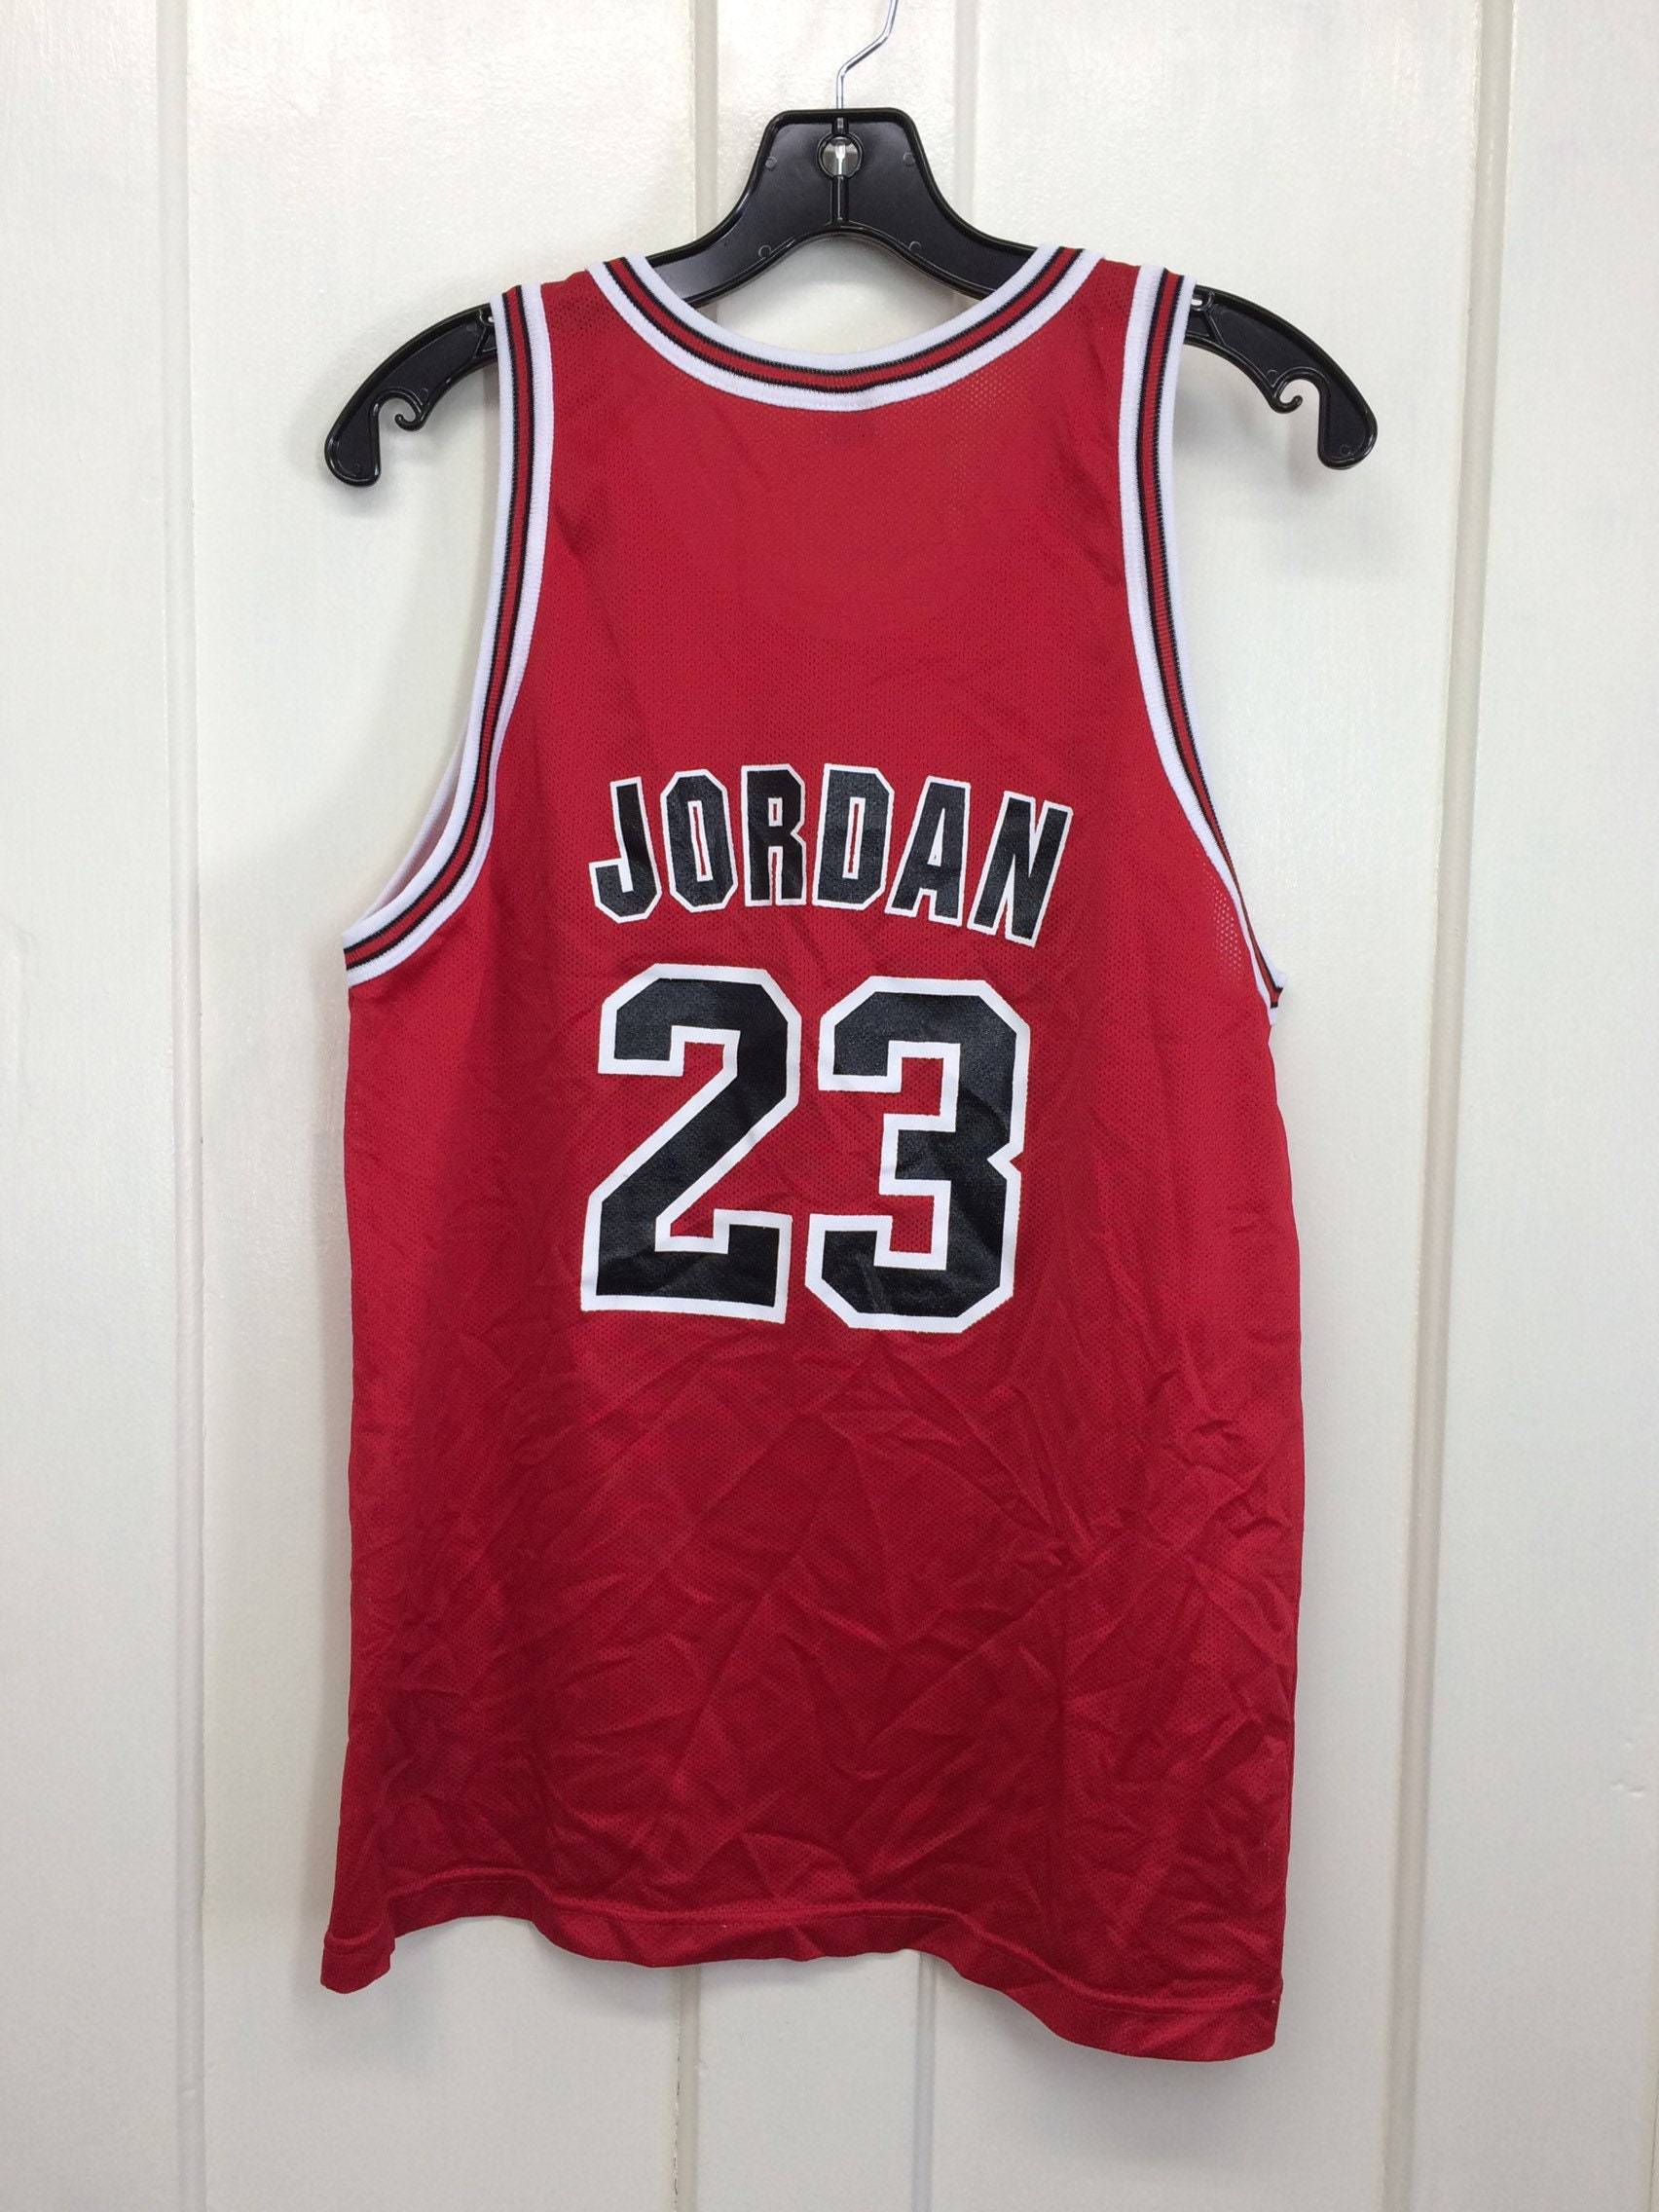 6cc9aed0a247 1990s Michael Jordan Chicago Bulls number 23 red black NBA basketball team  Champion brand jersey tank top size Youth XL 18-20